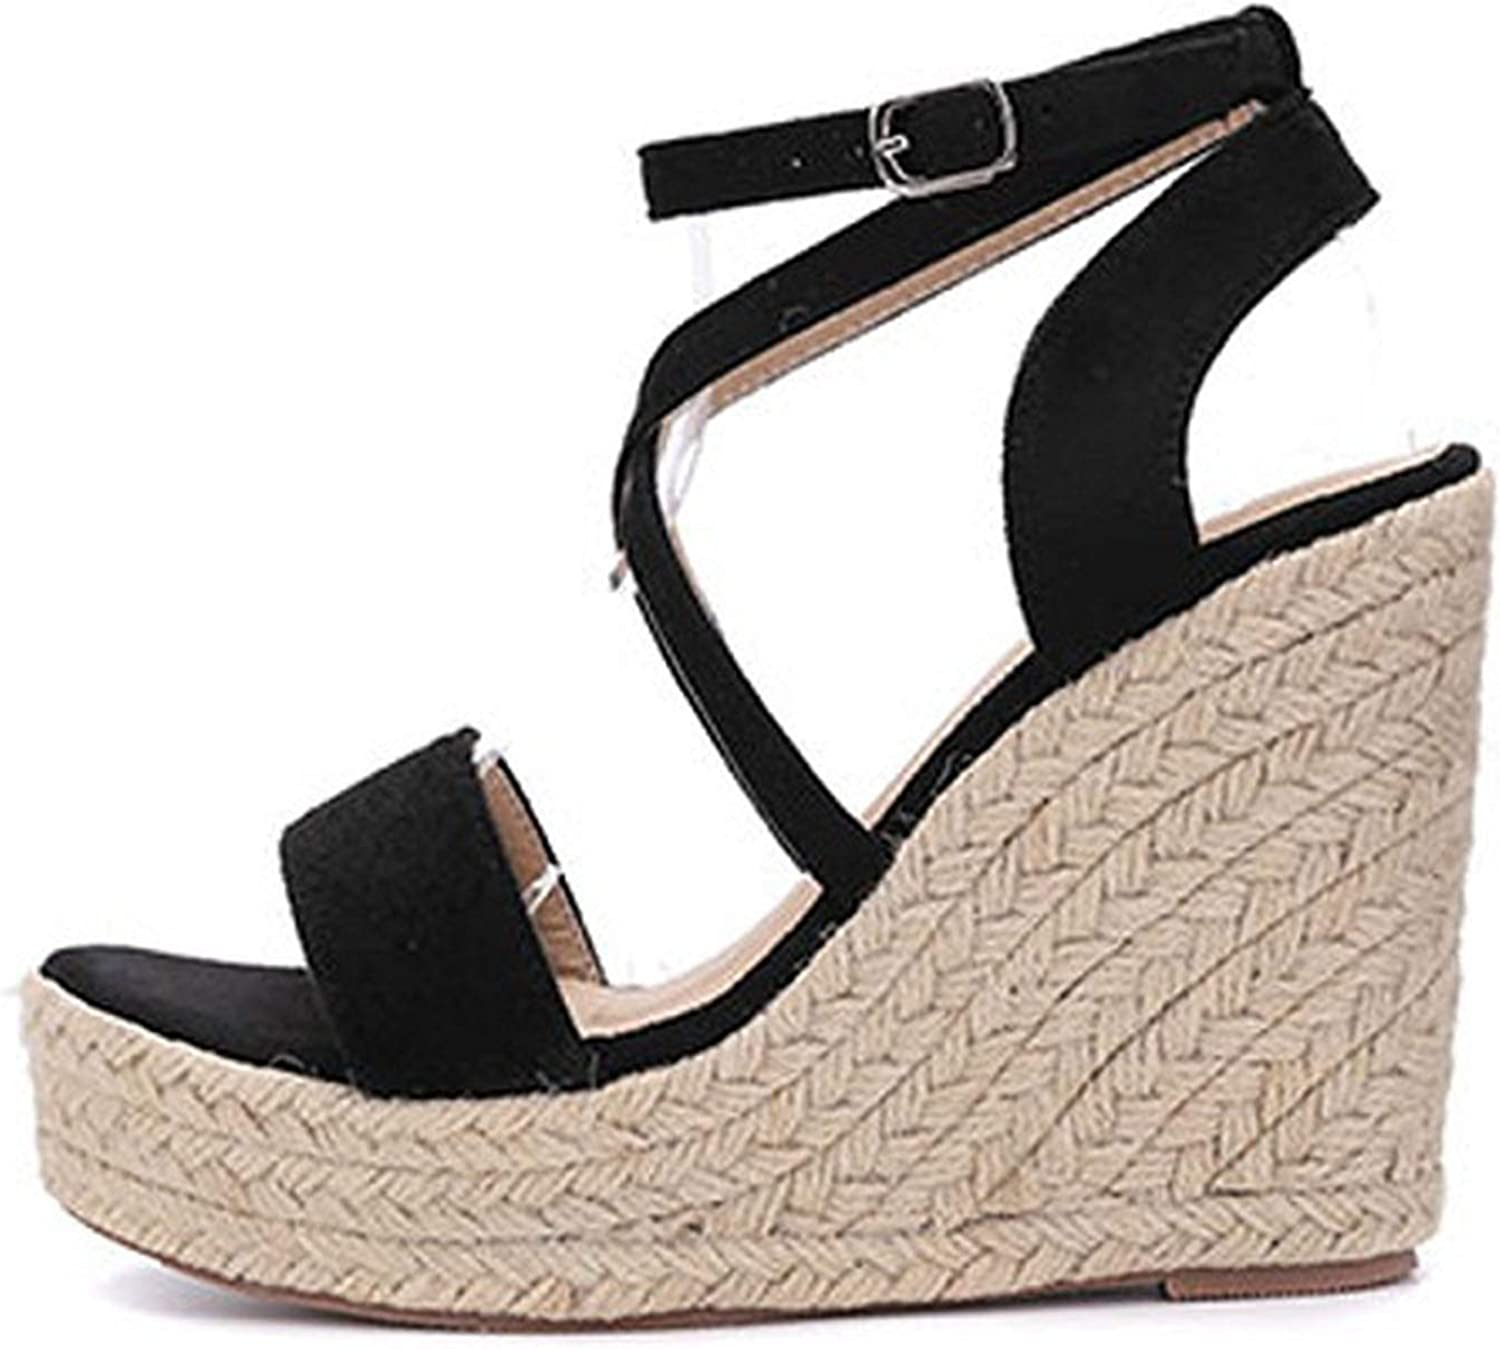 HuangKang Platform 4Cm Women Sandals Buckle Strap Rome Wedges Sexy Peep Toe Fashion Ladies shoes Black Brown Sandals